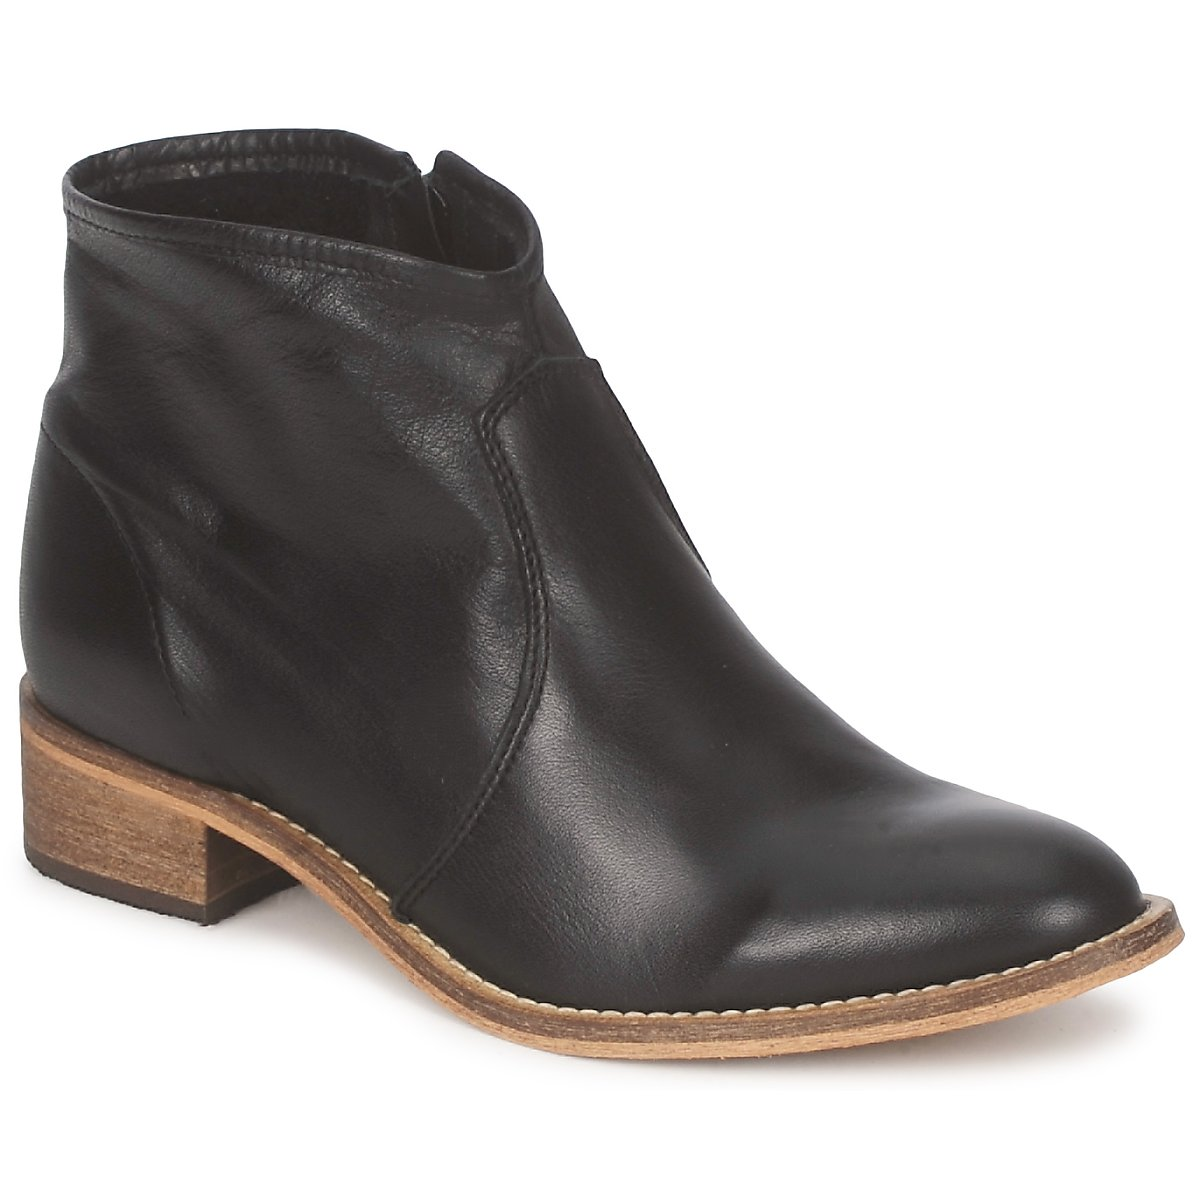 betty london ankle boot